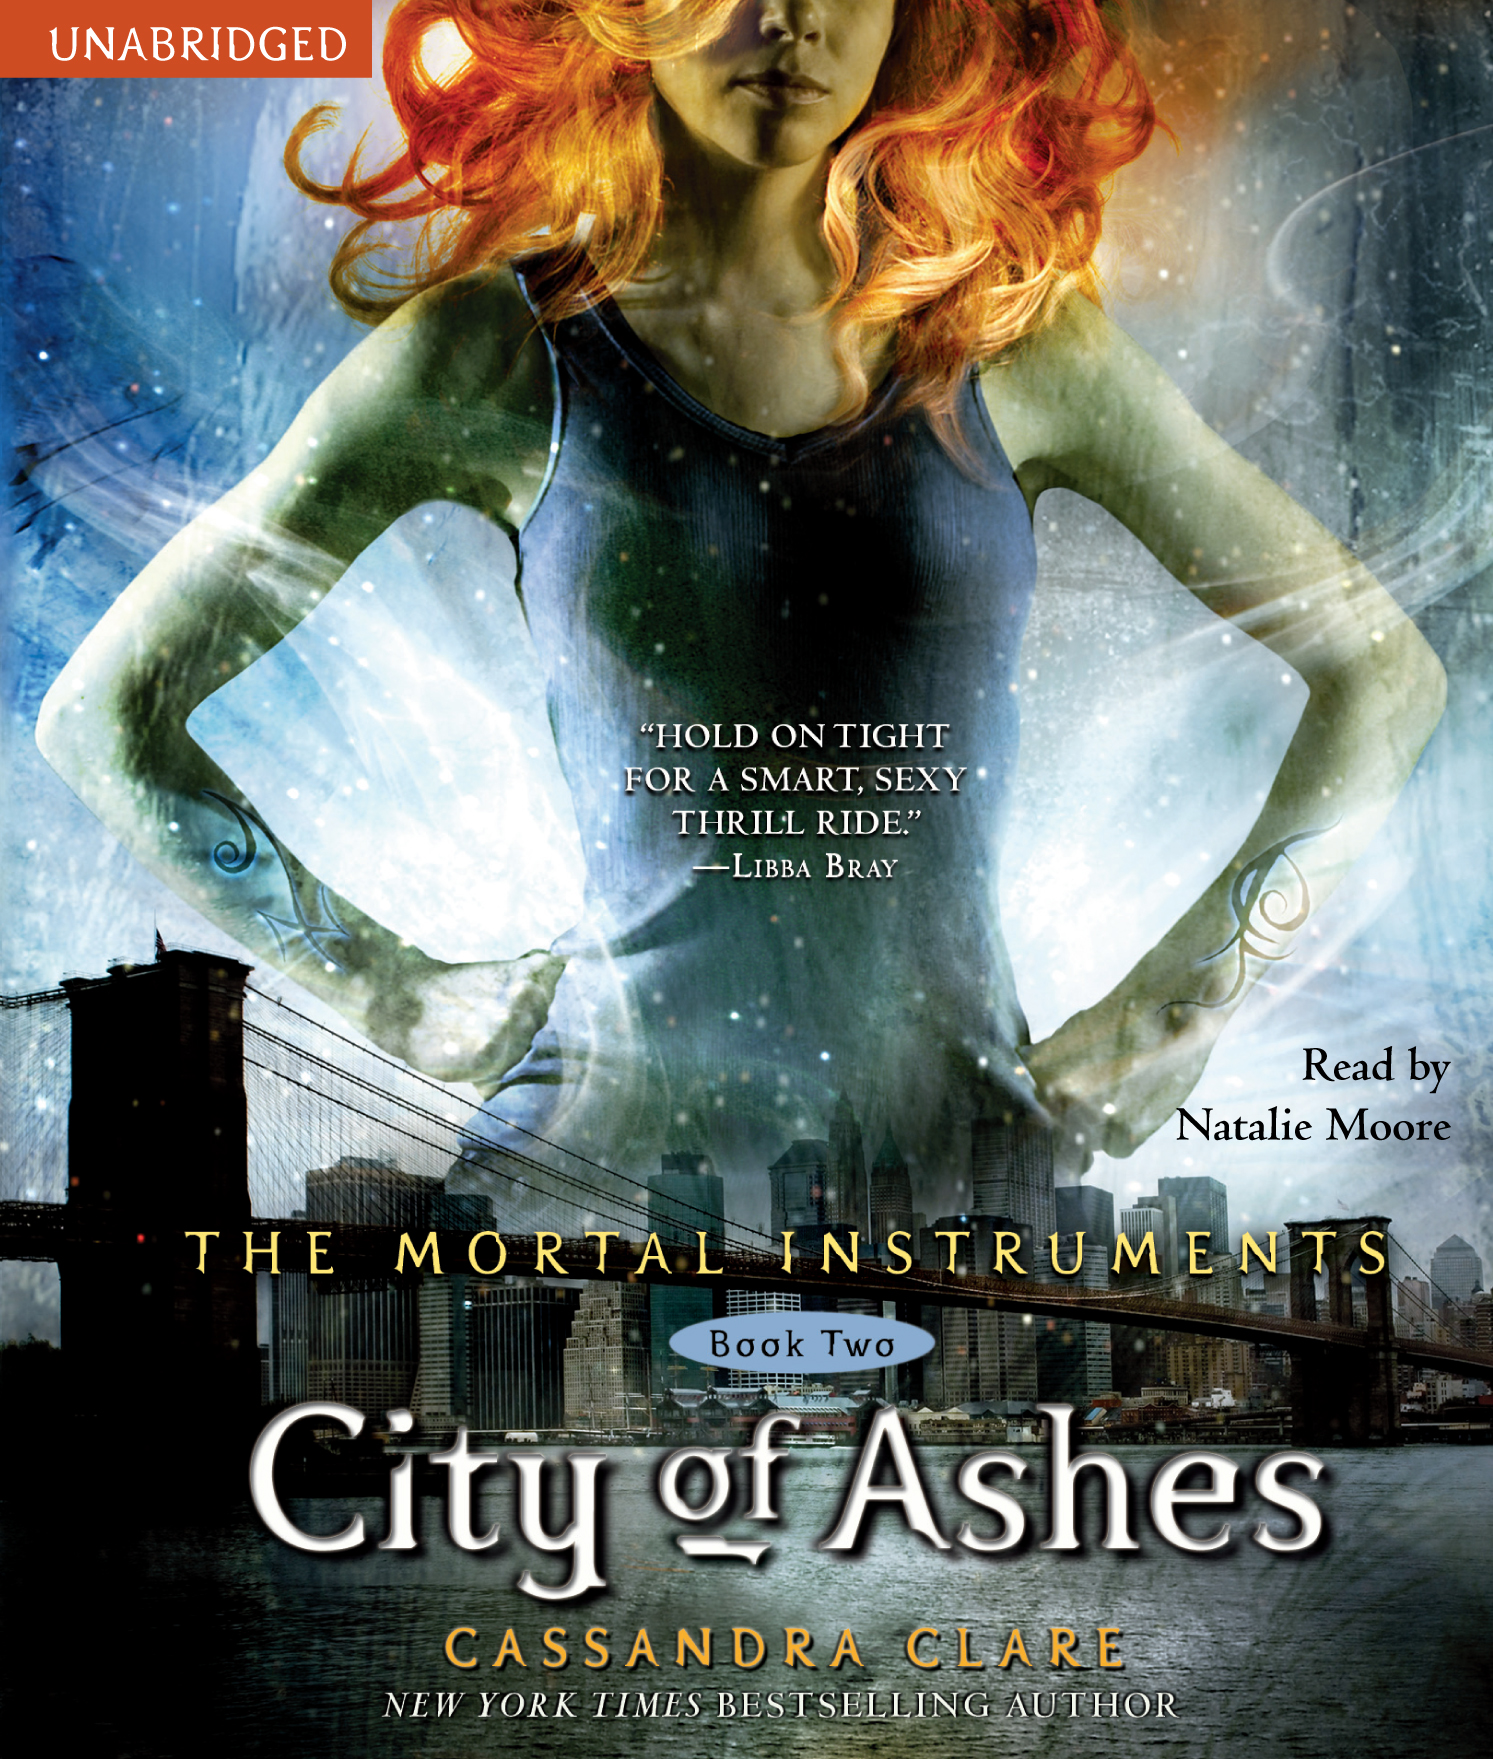 city of bones by cassandra clare pdf free download